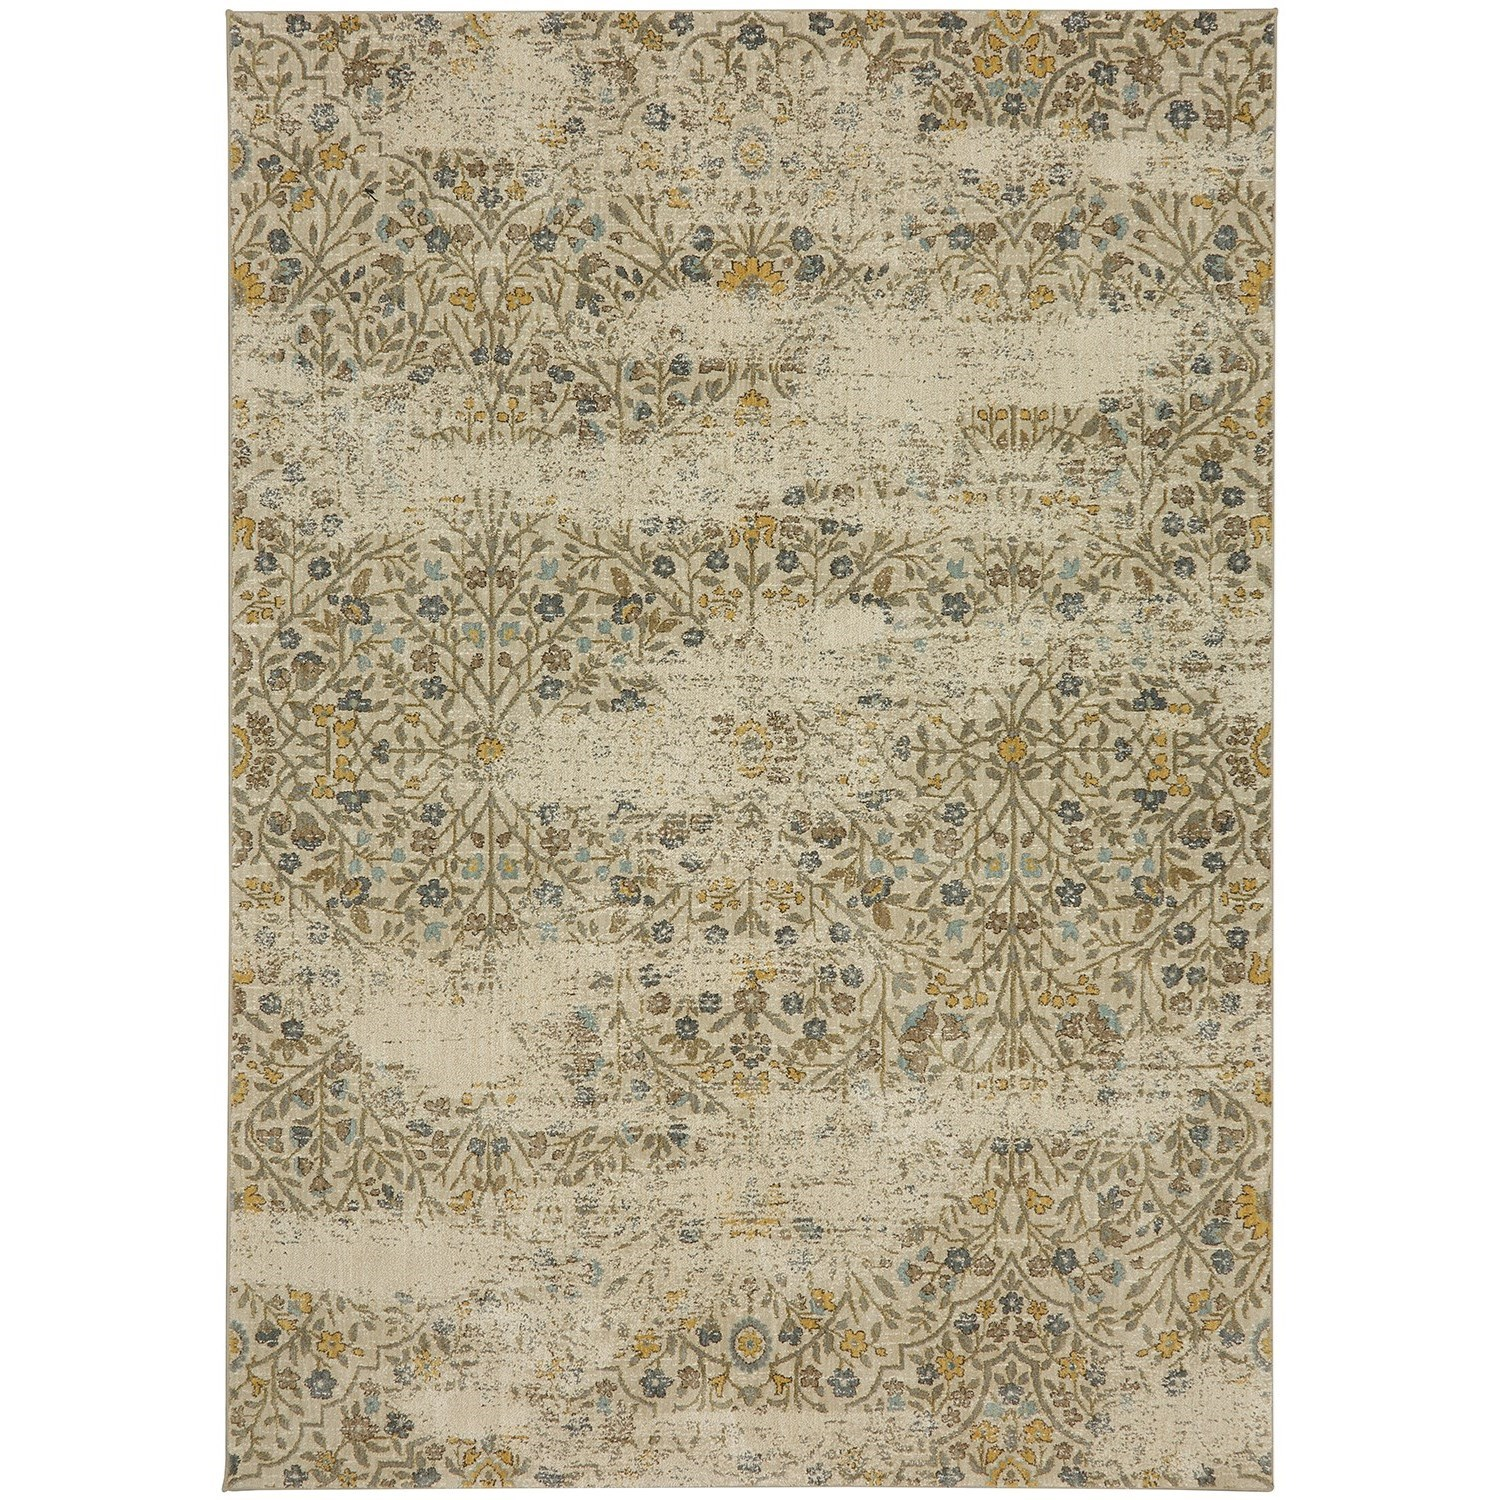 """3' 6""""x5' 6"""" Rectangle Floral Area Rug"""